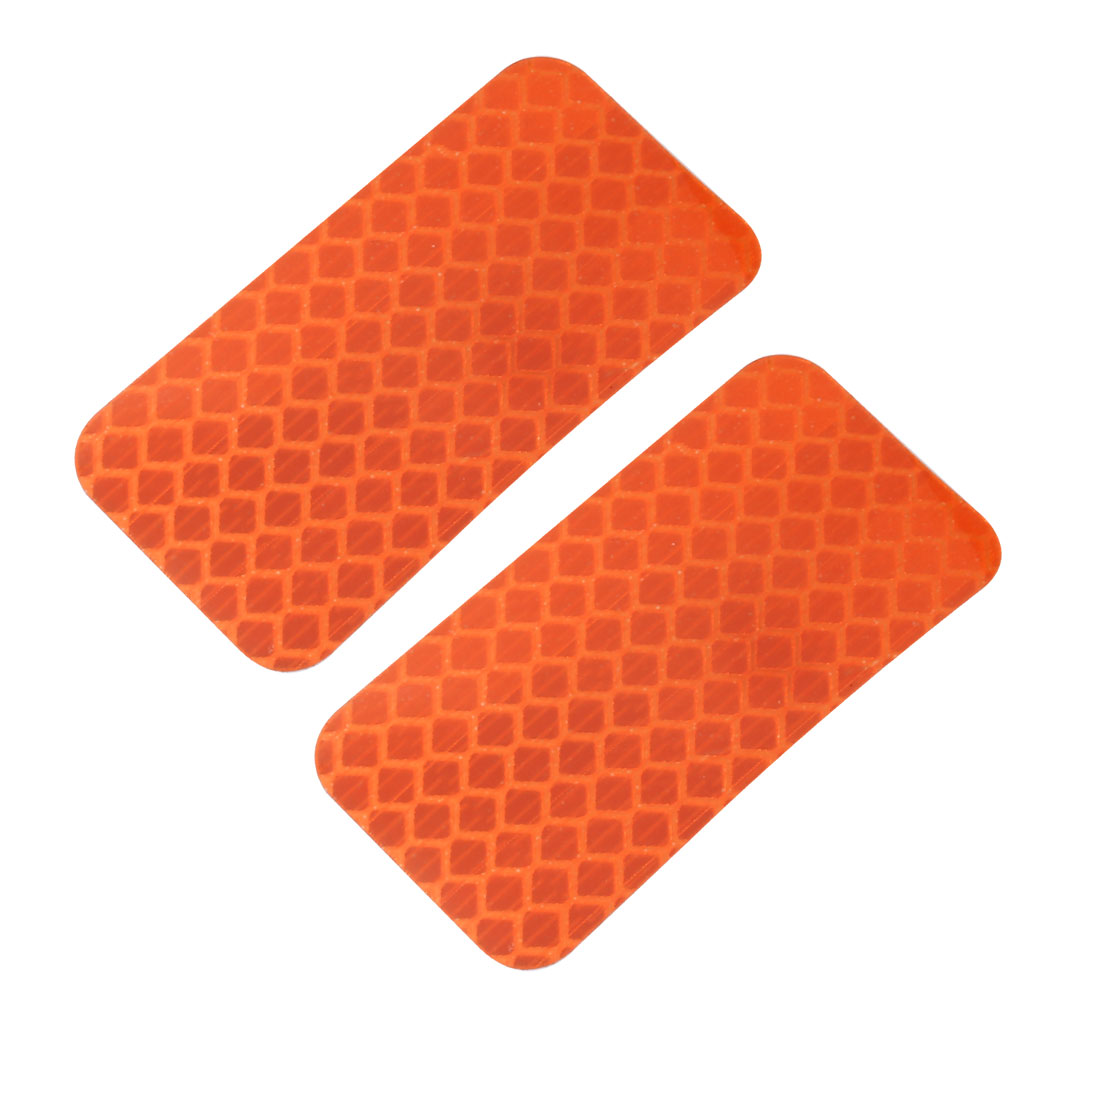 2pcs Honeycomb Reflective Warning Tape Film Sticker Orange 30mm x 60mm